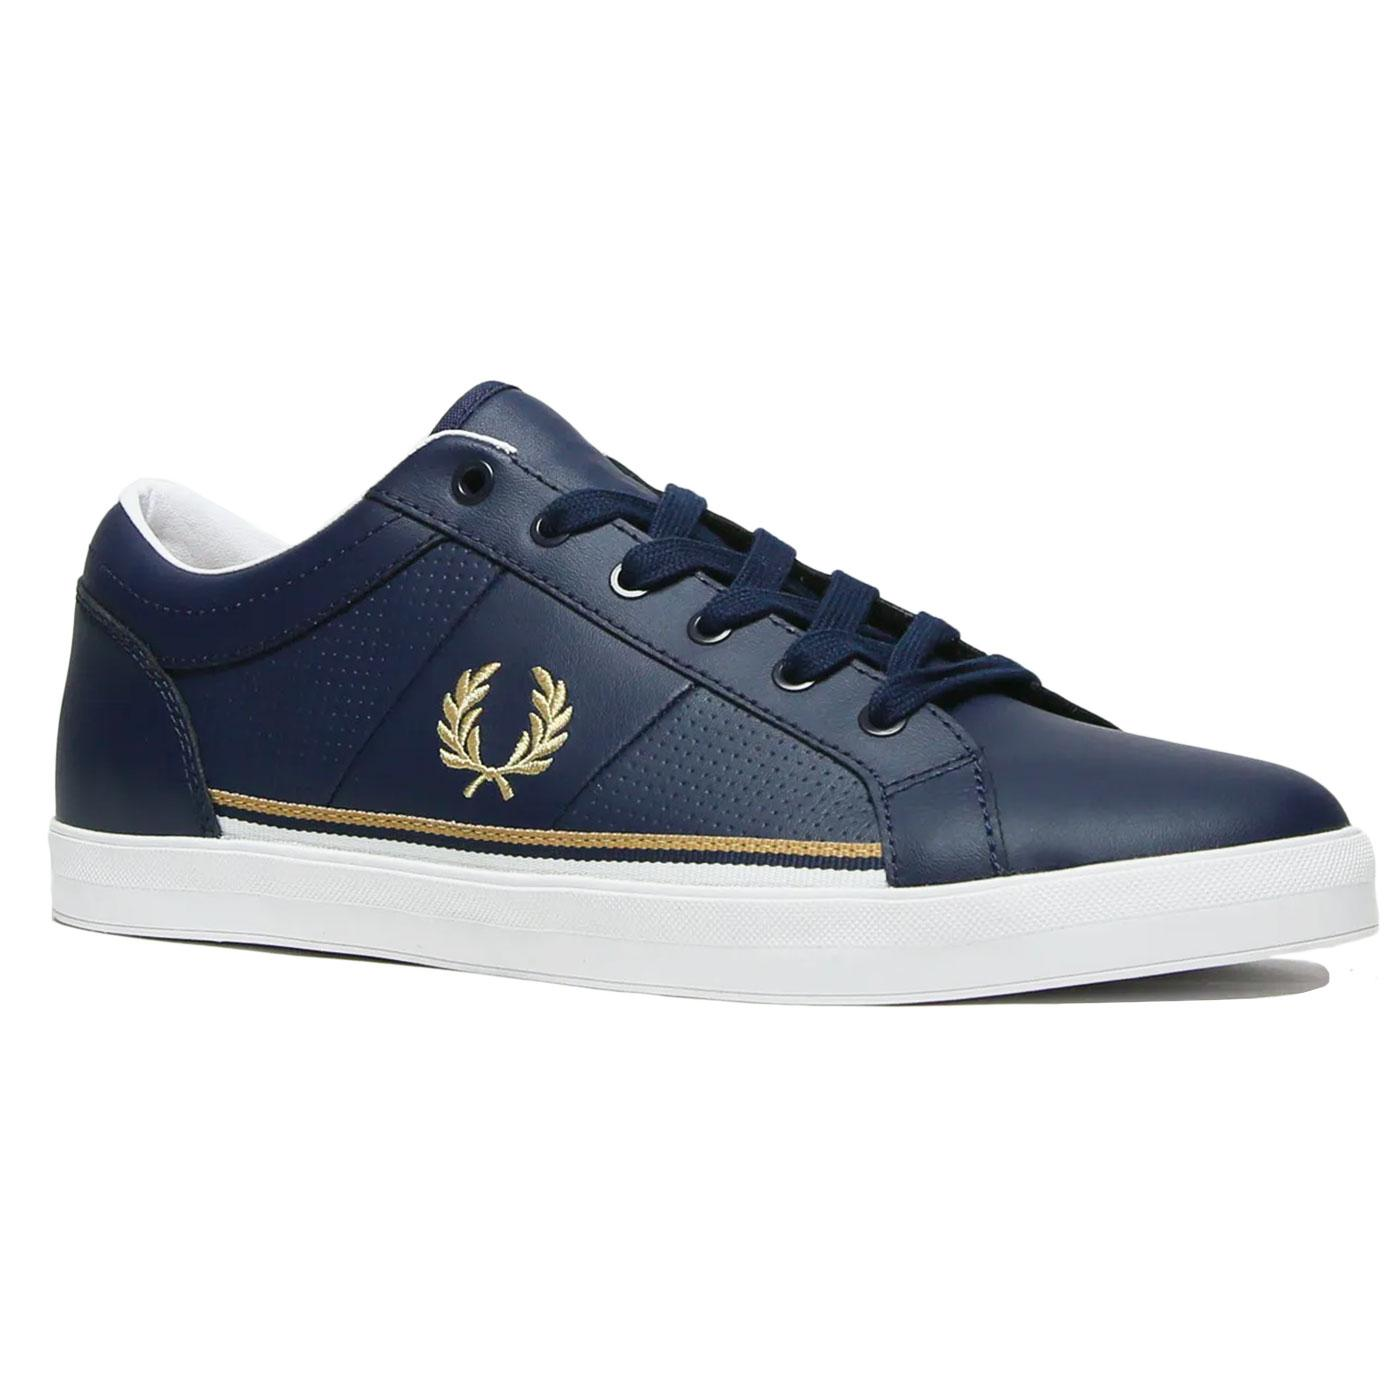 Baseline FRED PERRY Retro Perf Leather Trainers N